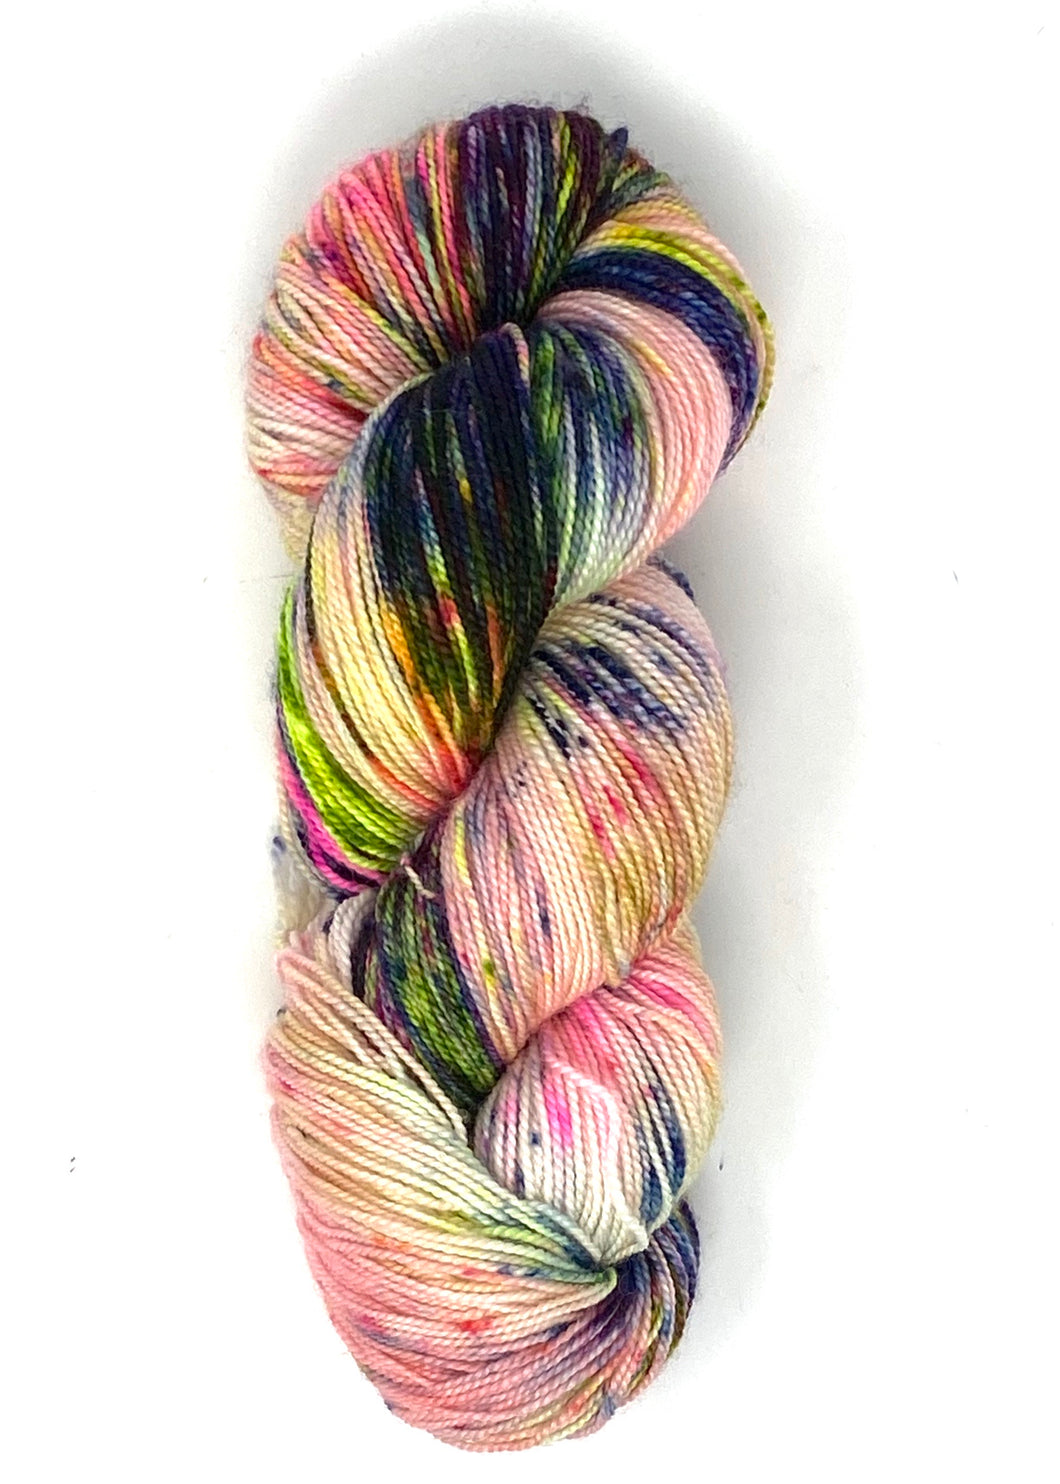 August '19 Baah Yarn La Jolla Monthly Color